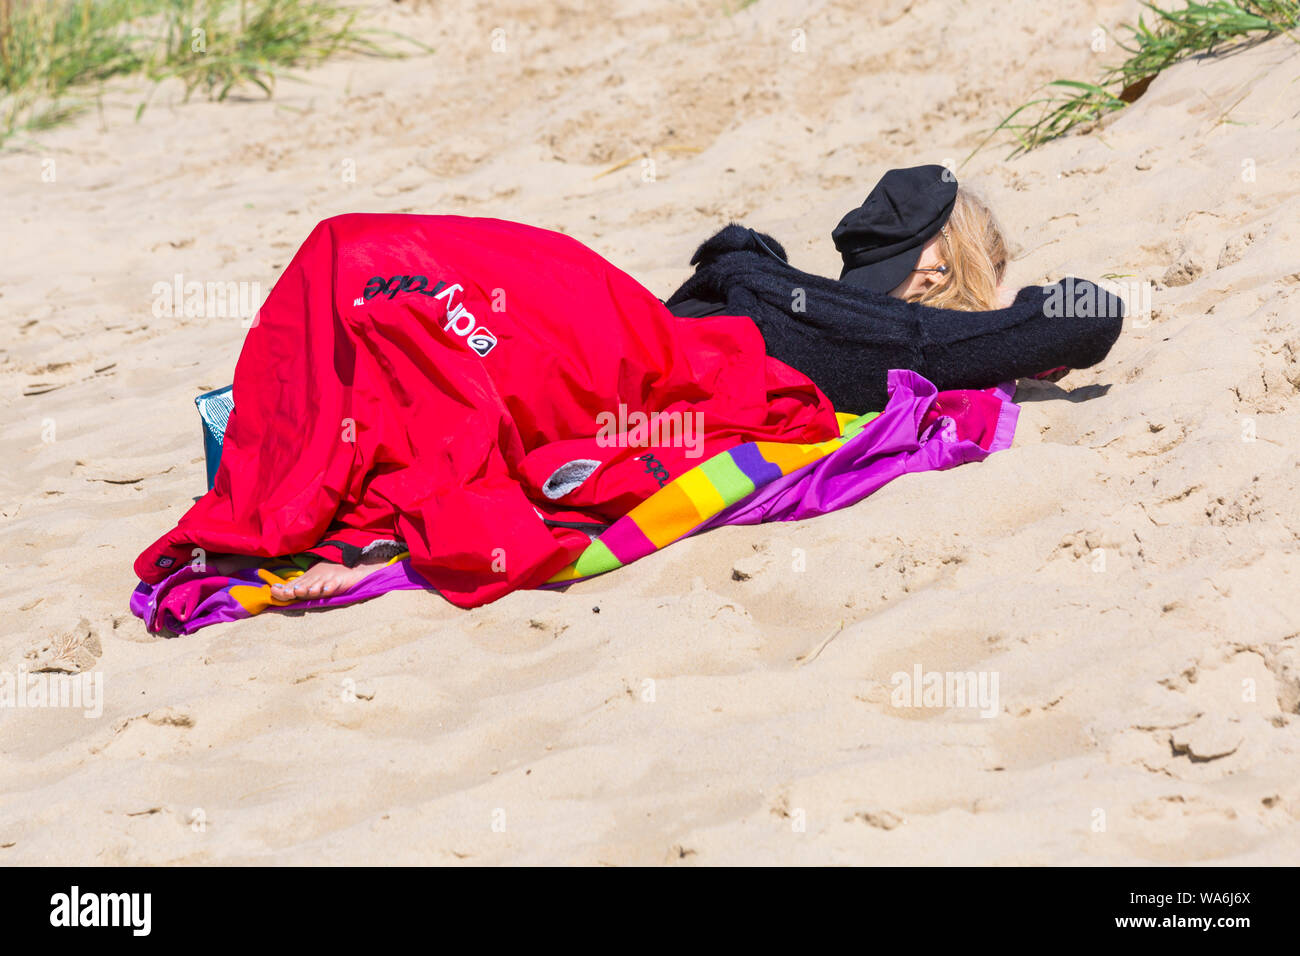 Poole, Dorset UK. 18th Aug 2019. UK weather: after a wet start, the sun returns and a lovely warm sunny day as beachgoers head to the seaside at Poole beaches to enjoy the sunshine. Credit: Carolyn Jenkins/Alamy Live News Stock Photo